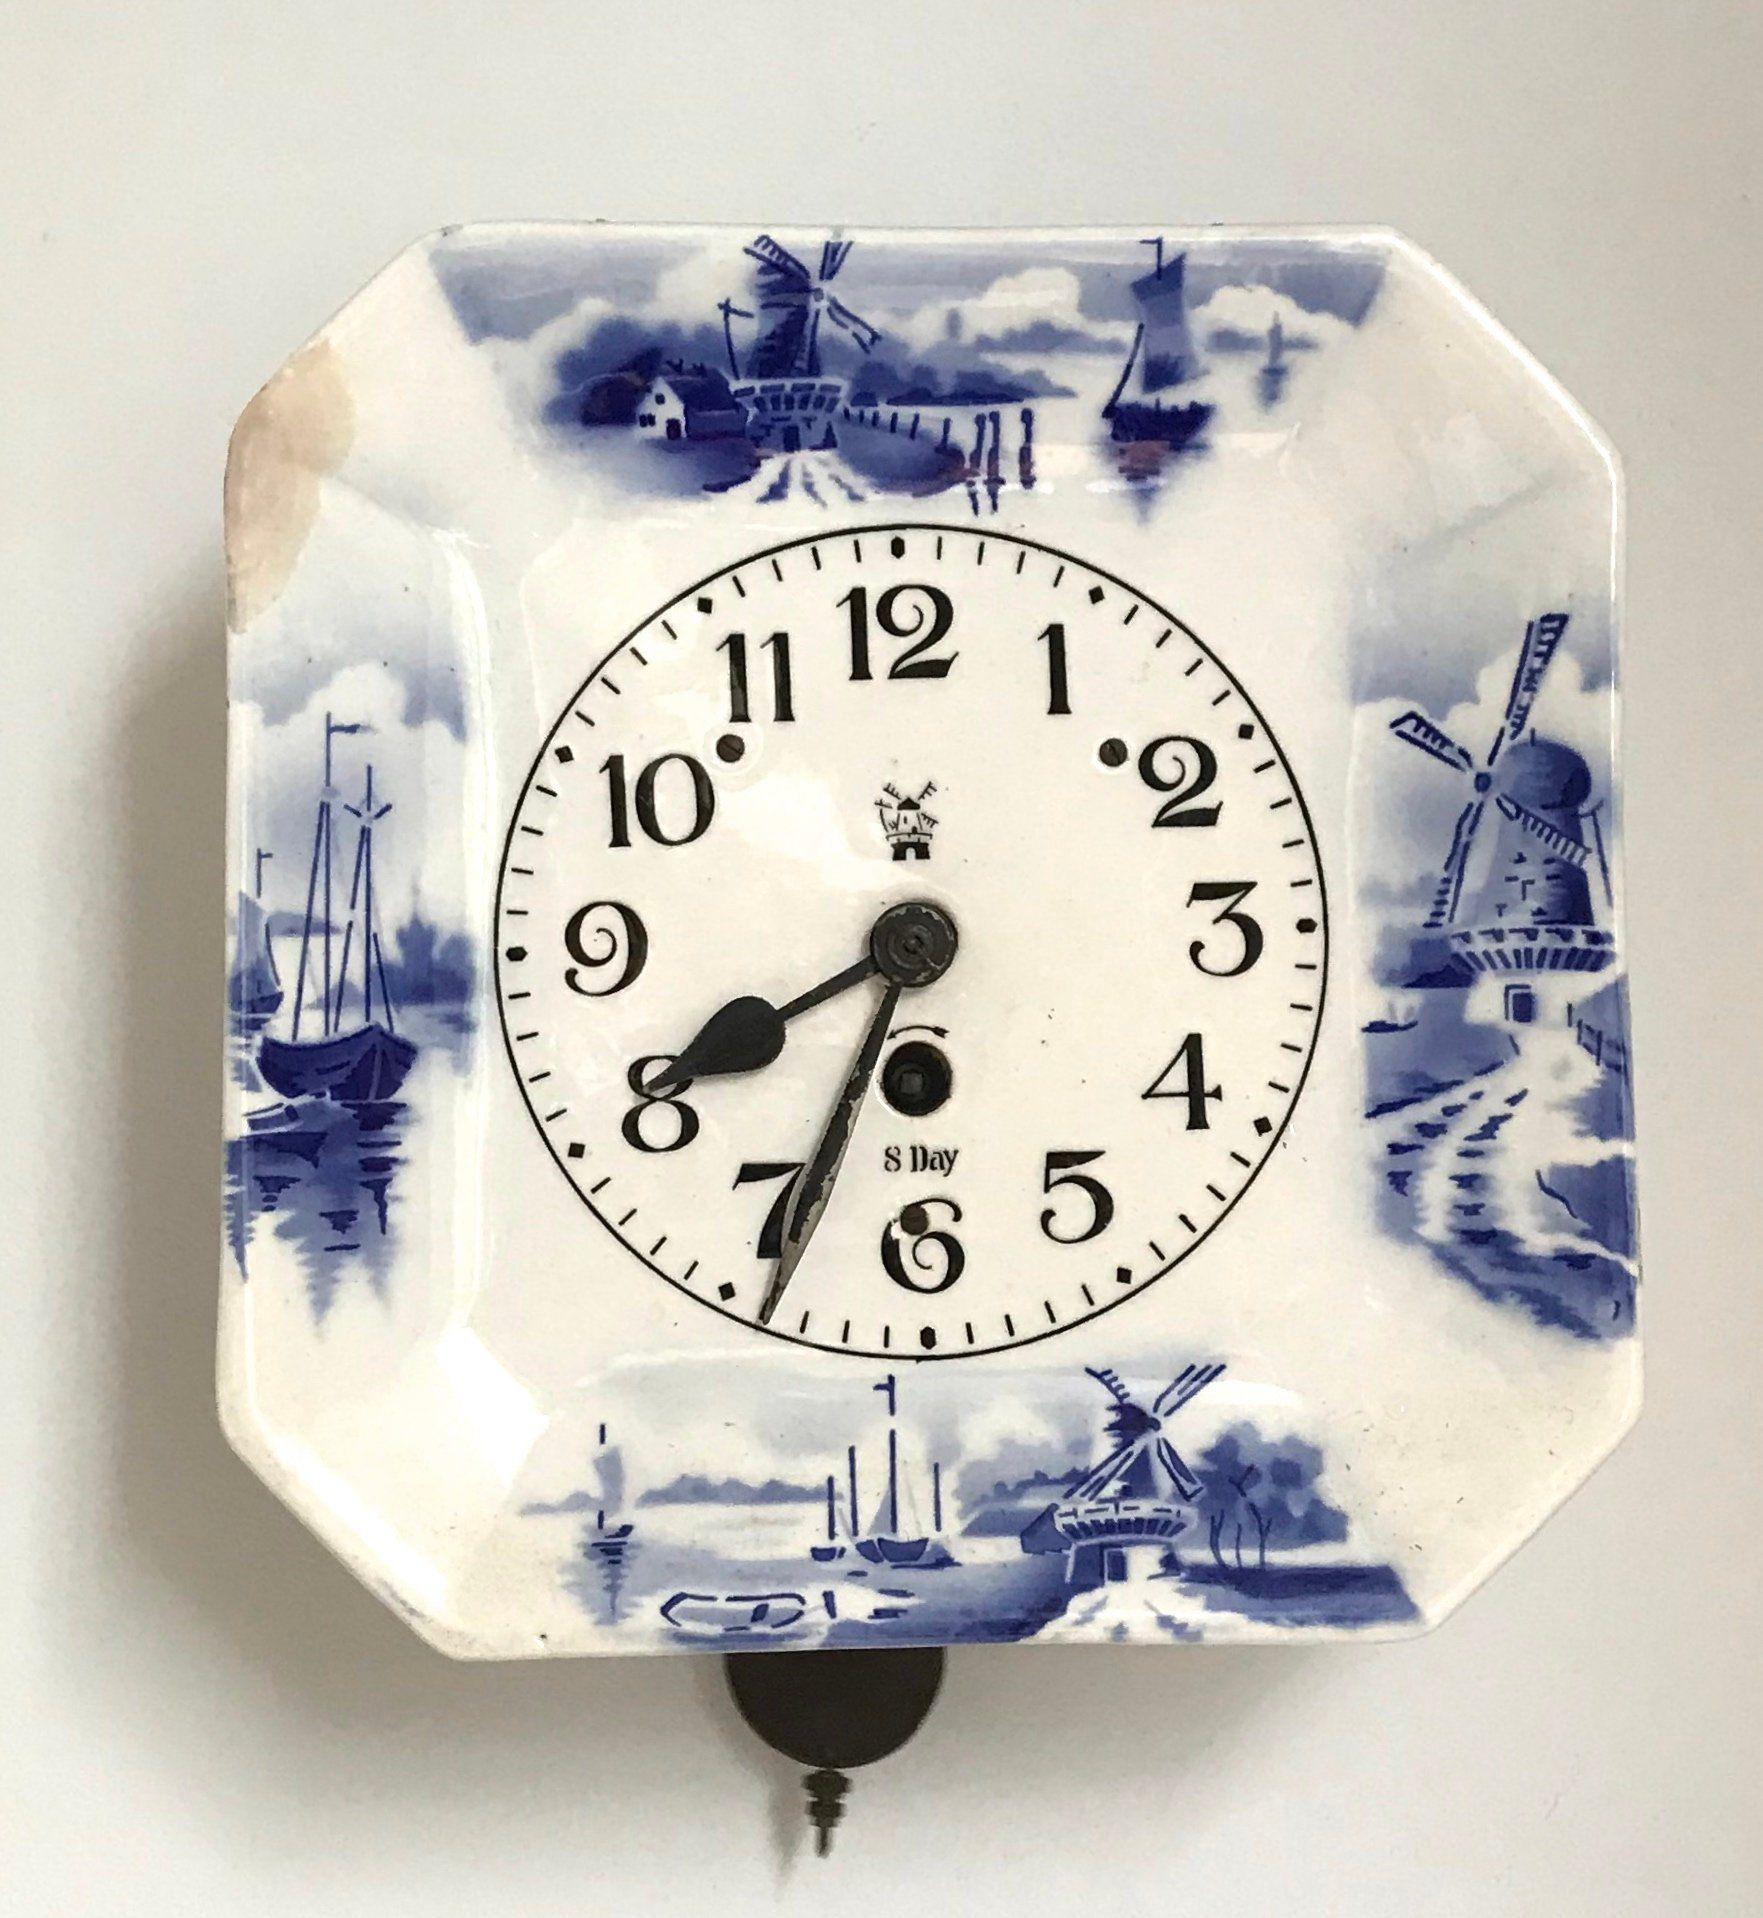 8 Day Wall Clock Ceramic Wall Clock Delft Wall Clock Dutch Motive Porcelain Wall Clock Octagonal Wall Clock By Vintag Clock Vintage Clock Wall Clock